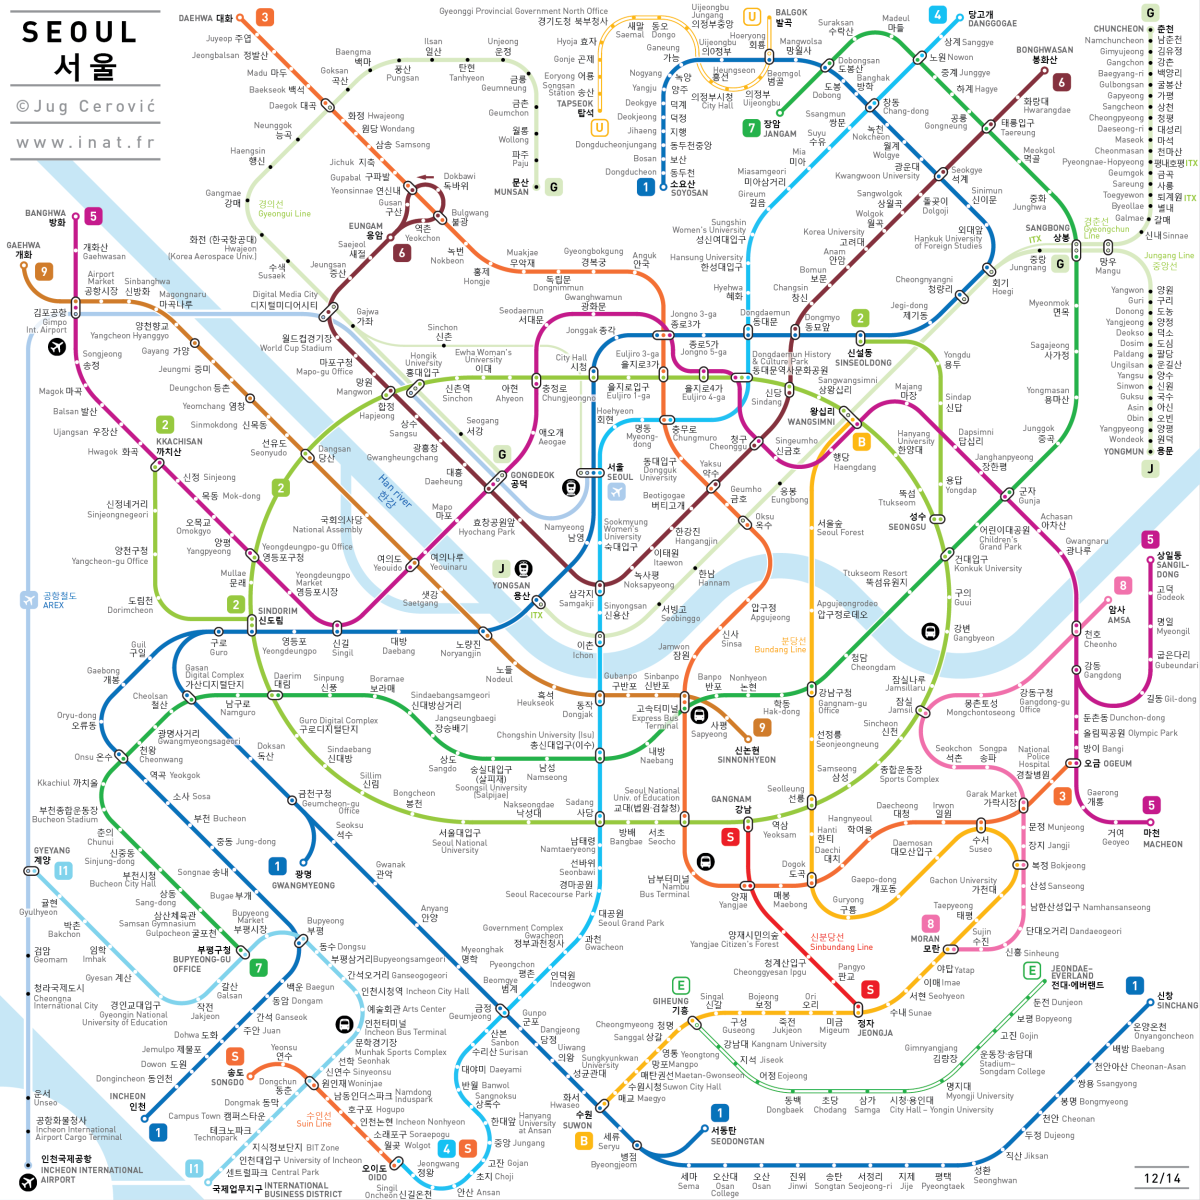 Upgraded Seoul subway map has been released The new Seoul subway